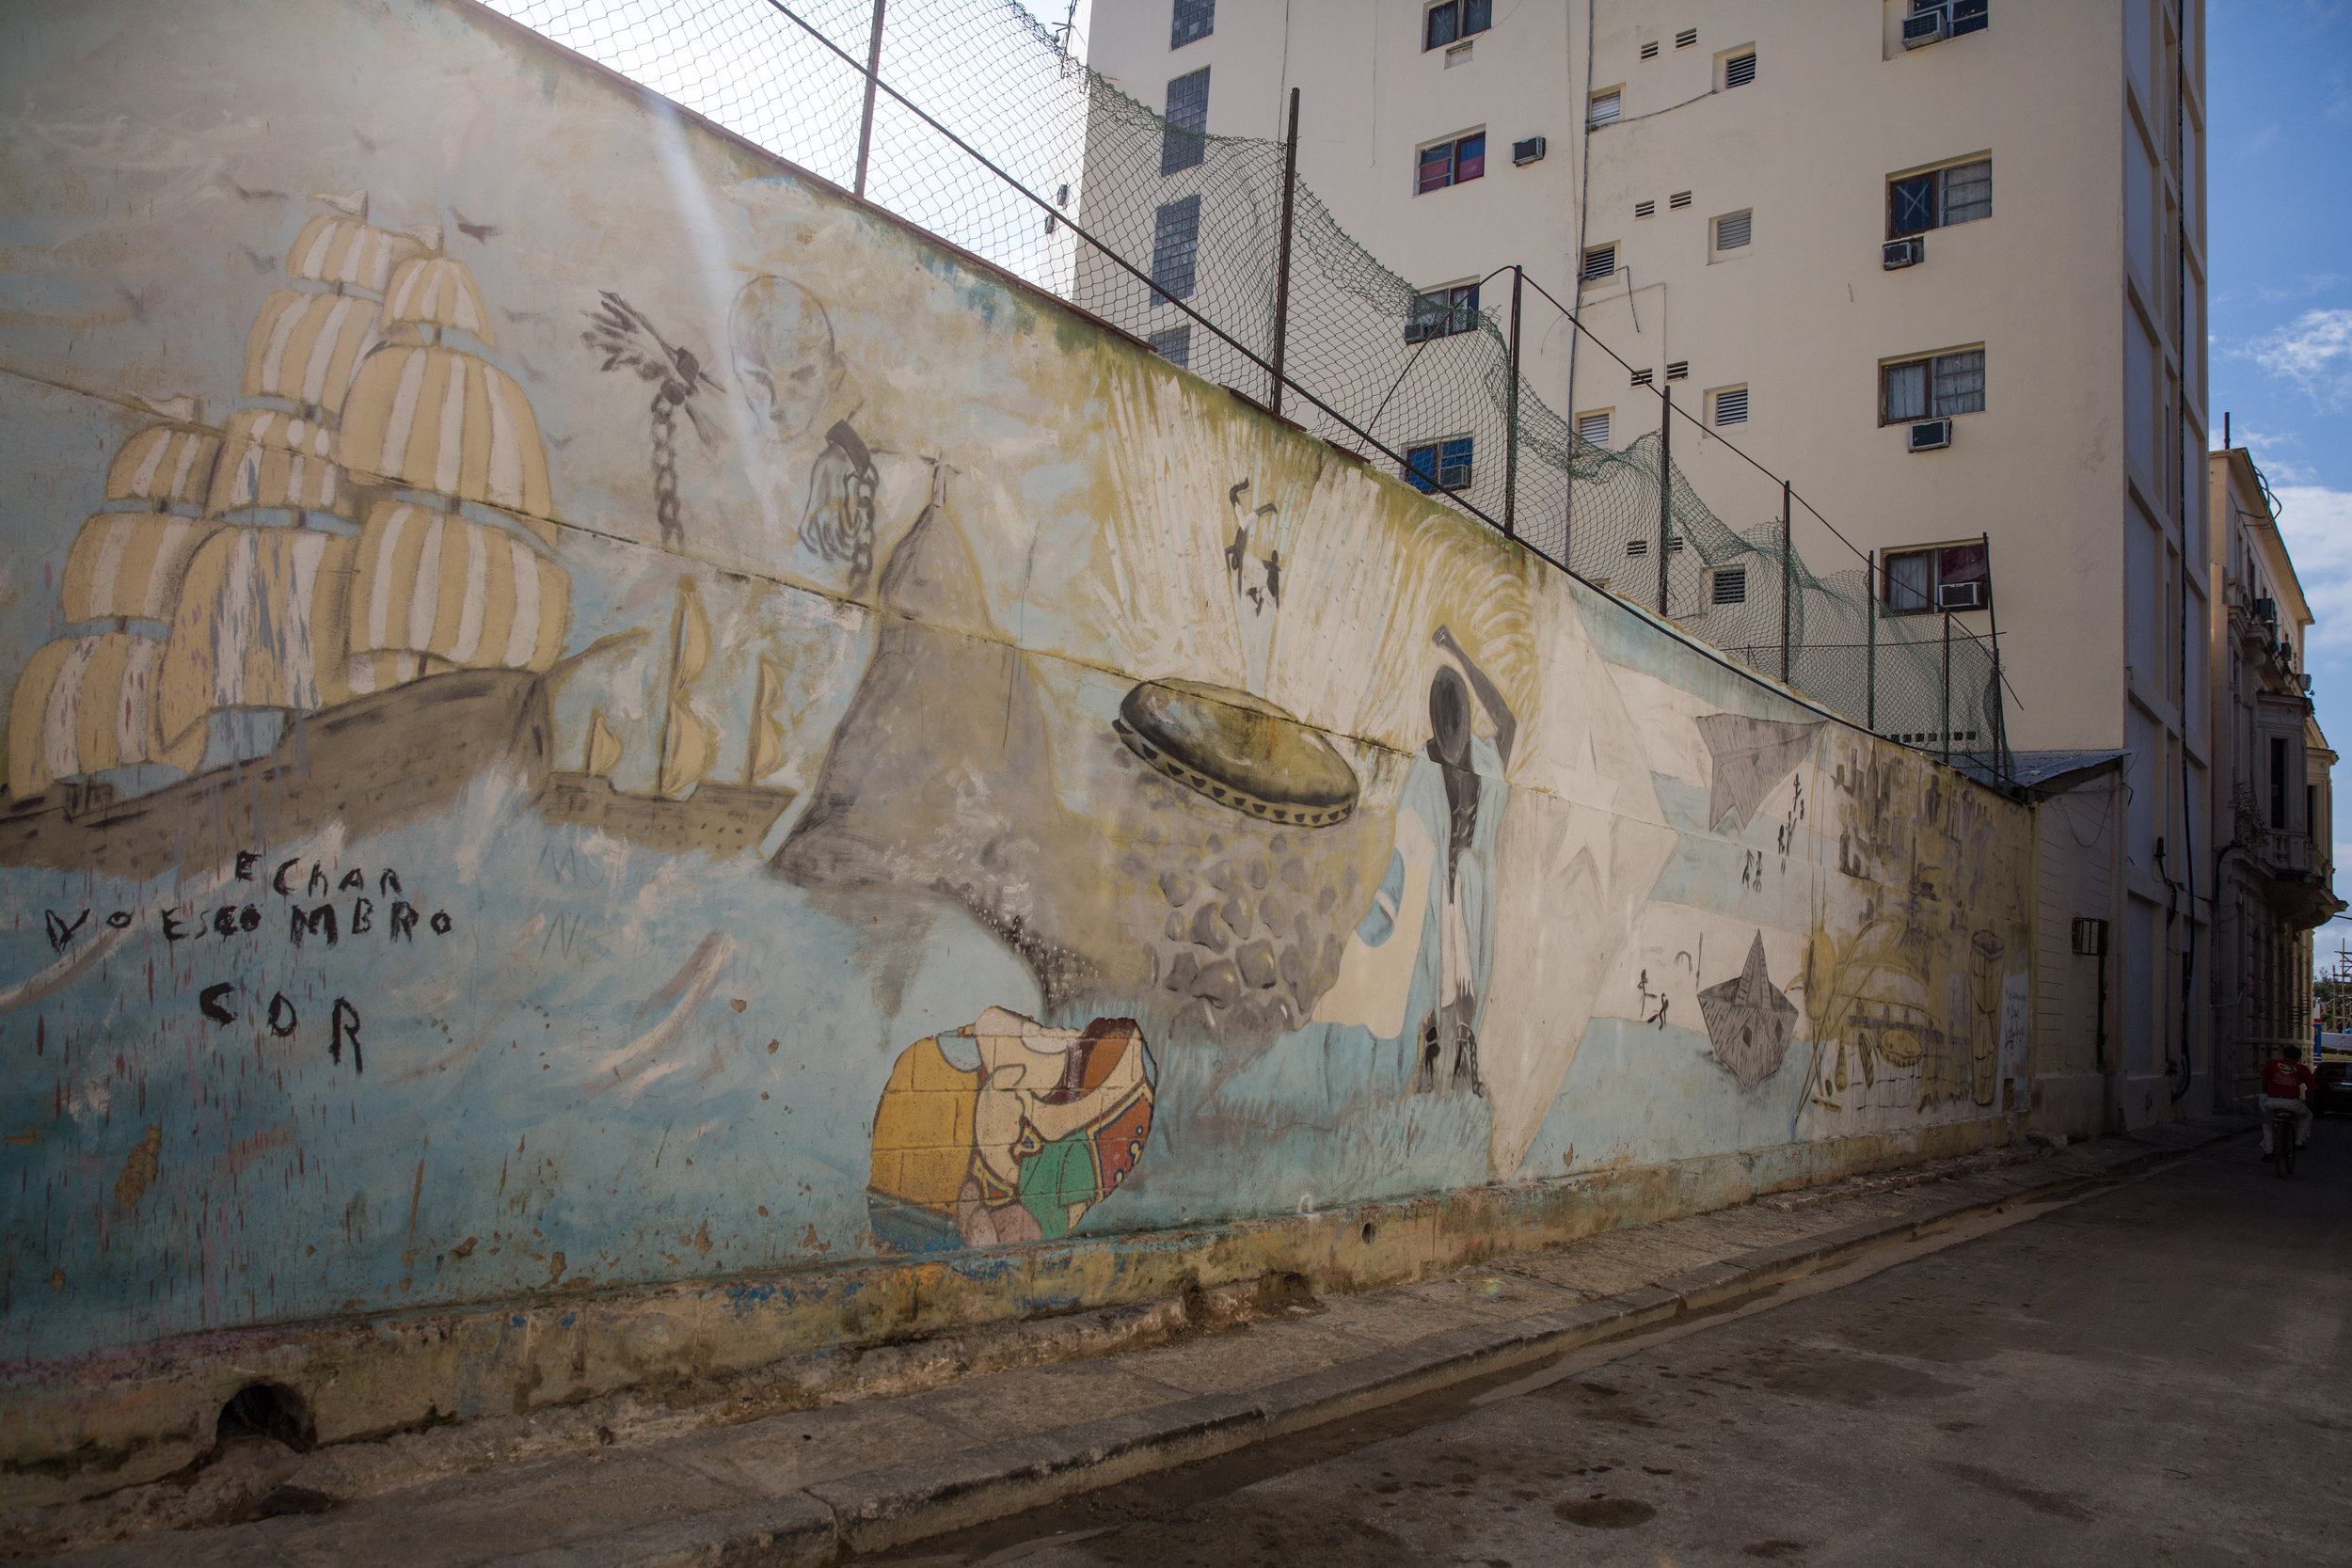 An old mural of a cartoon was covered up, over it a scene of Spanish ships, and African slaves beating drums and floating with spectral chains.